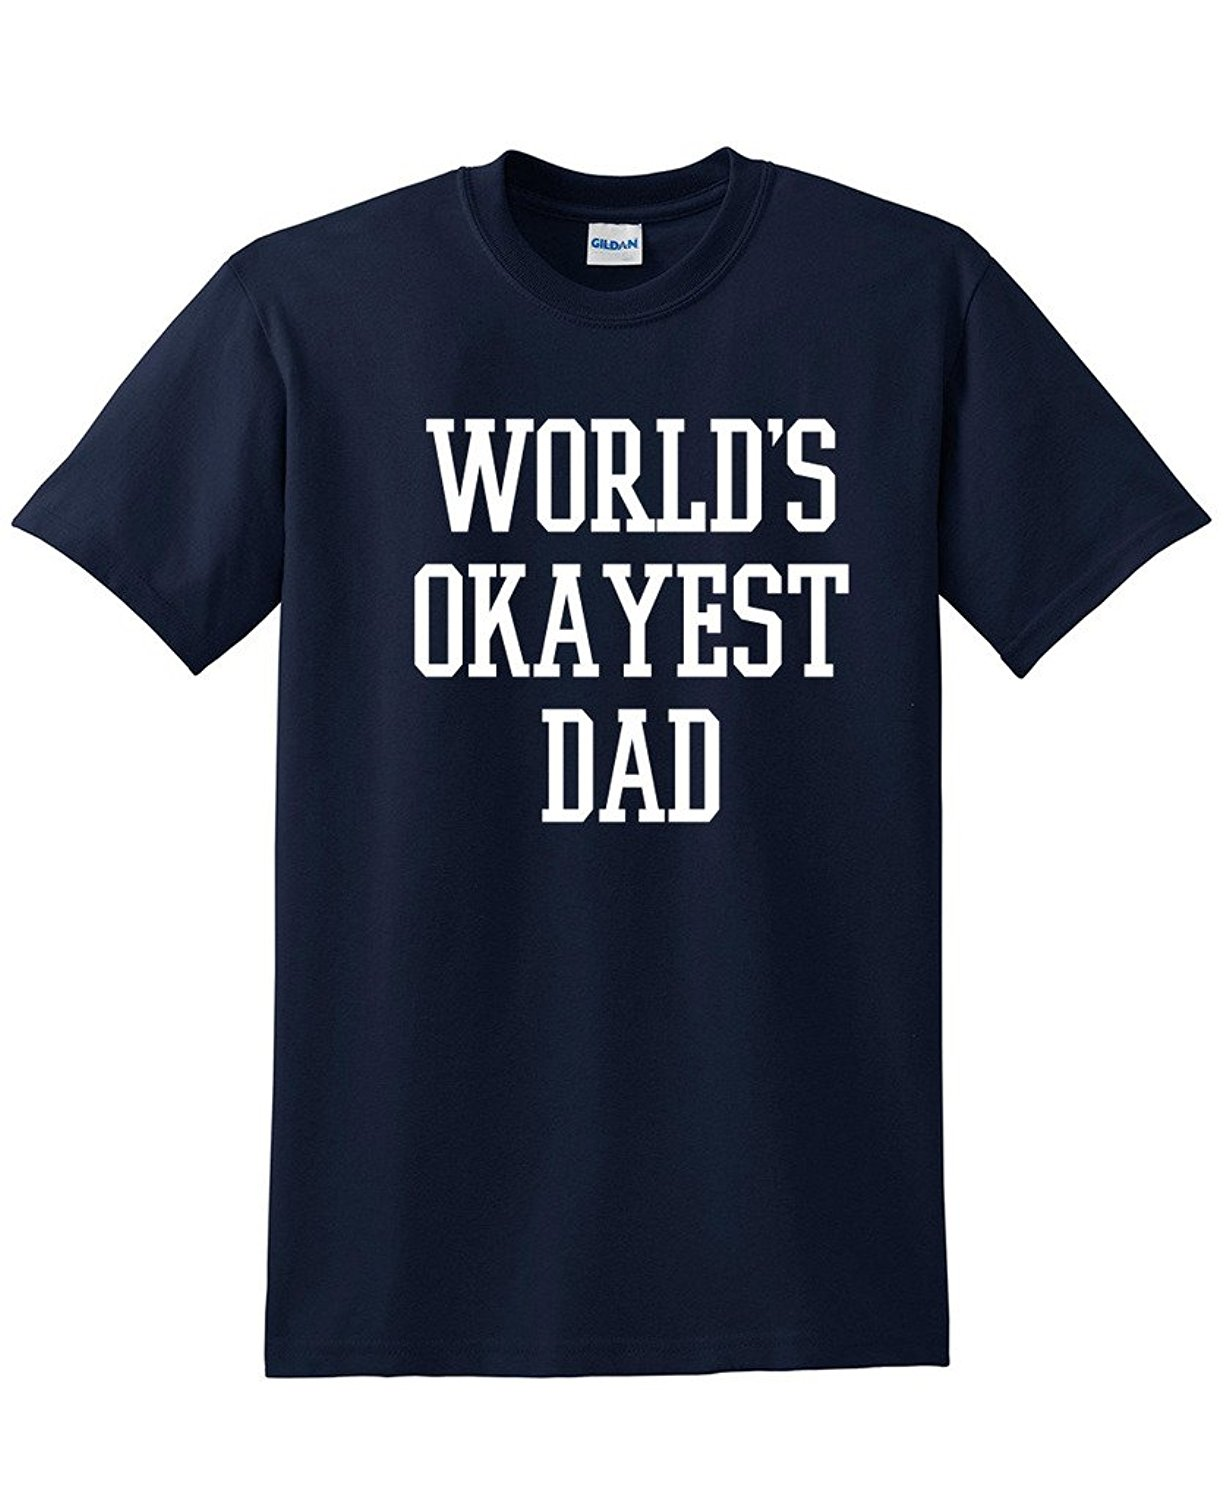 Worlds Okayest Dad Fathers Day Gift For Dad Funny T Shirt A261